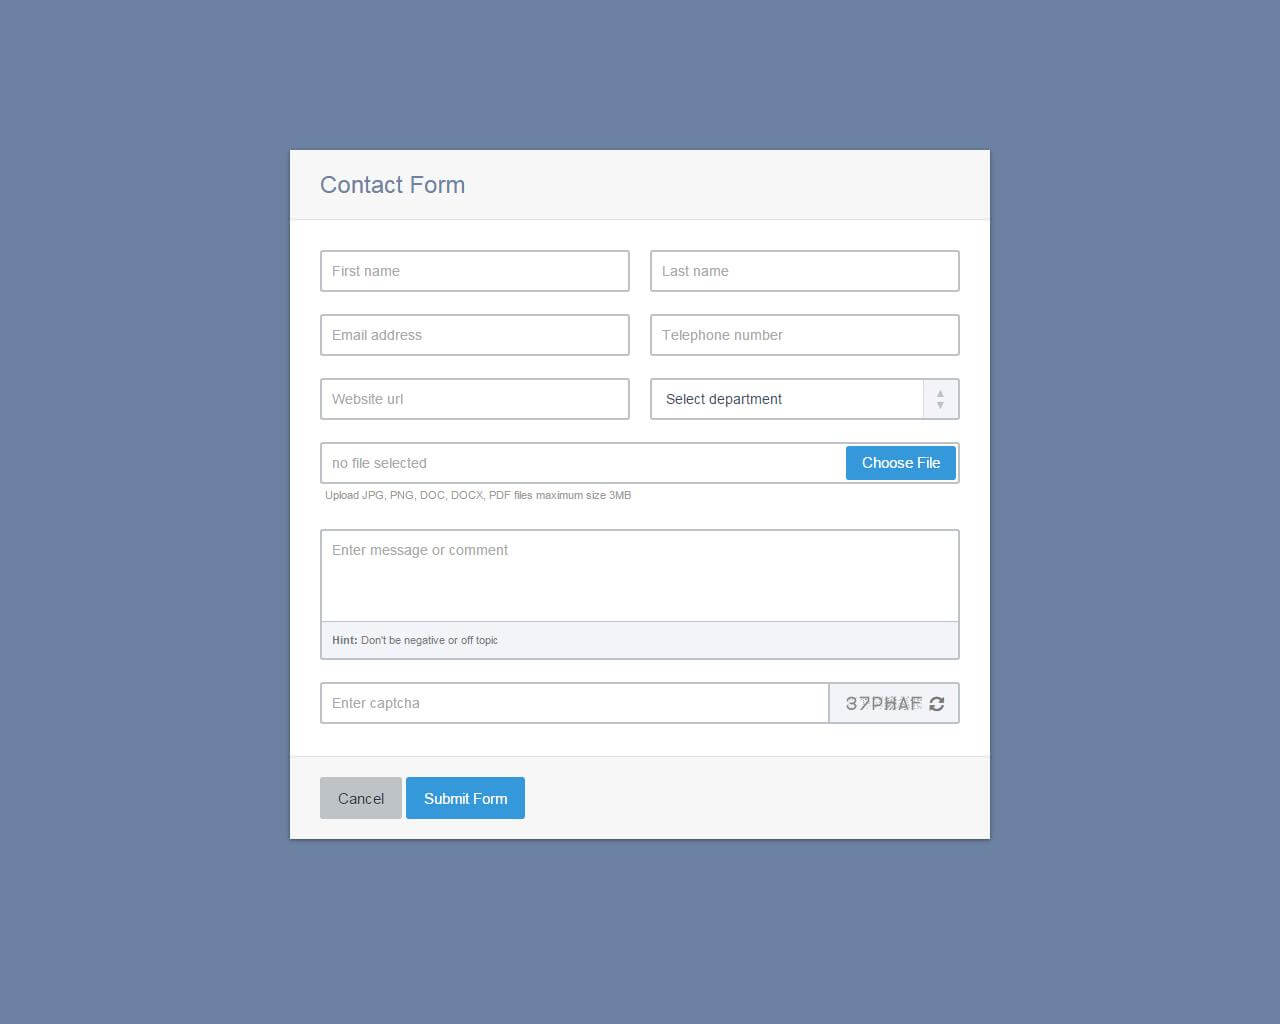 webform submissions